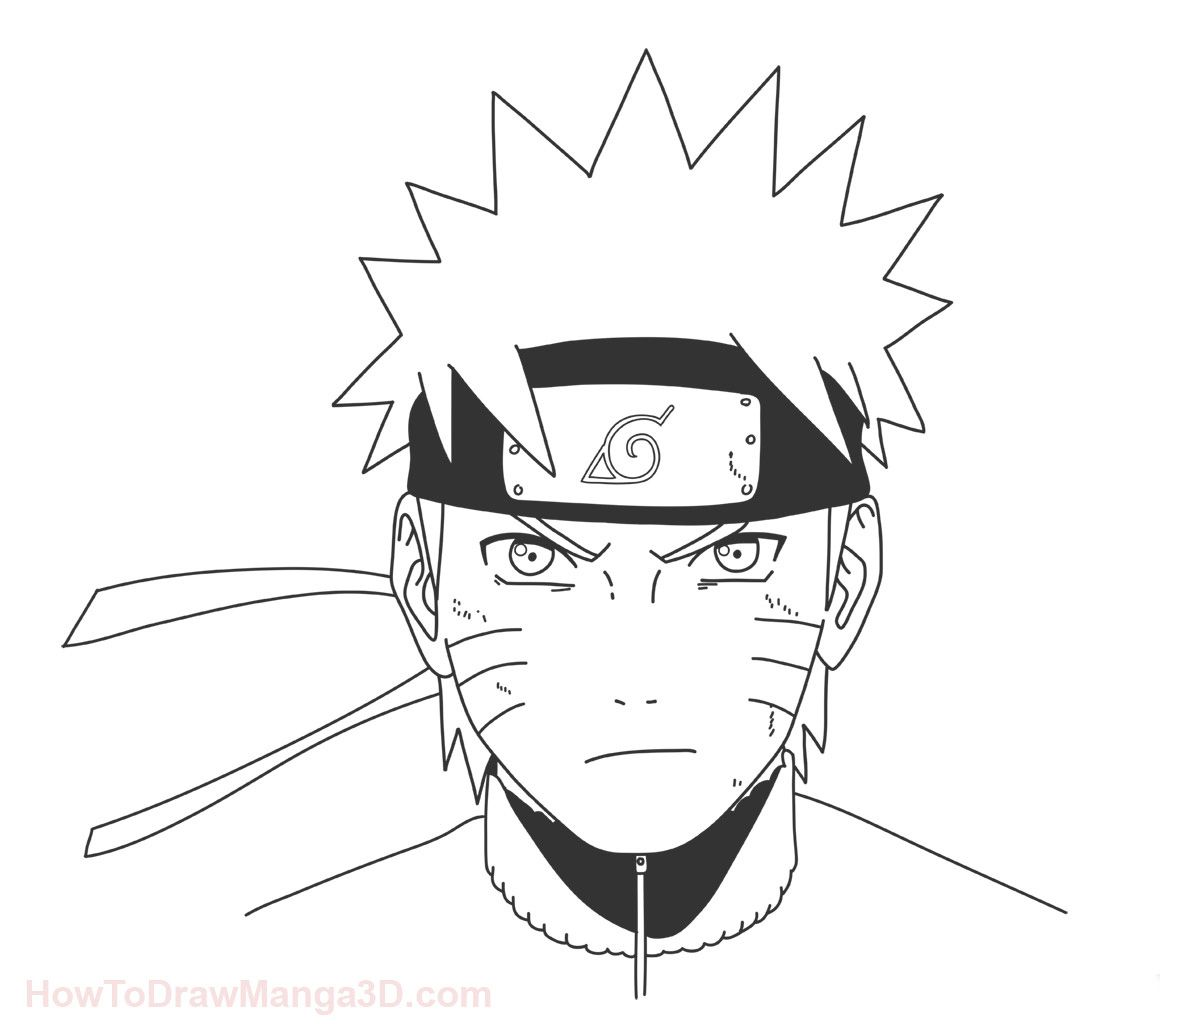 Let's learn how to draw Naruto Step by Step from Naruto